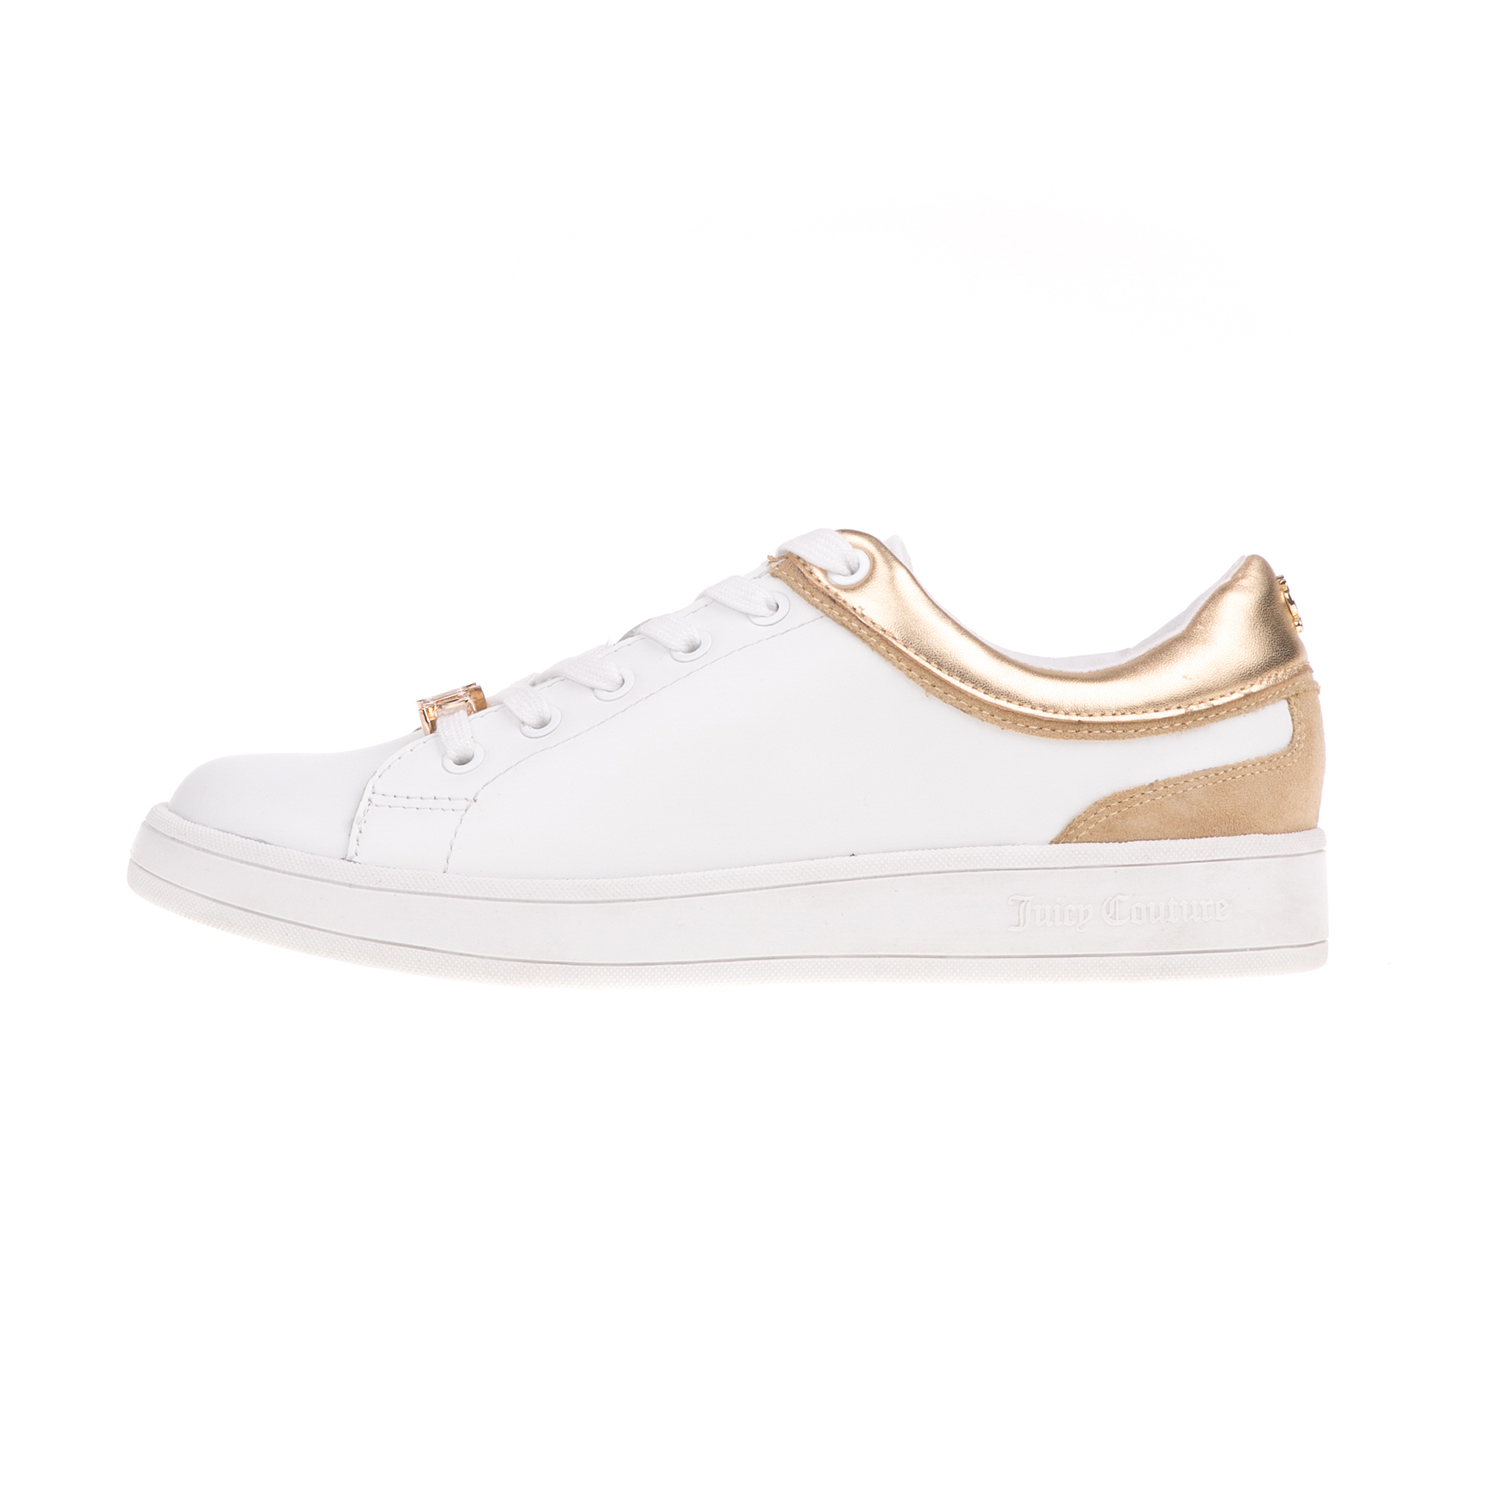 JUICY COUTURE – Γυναικεία sneakers JELLY JUICY COUTURE λευκά